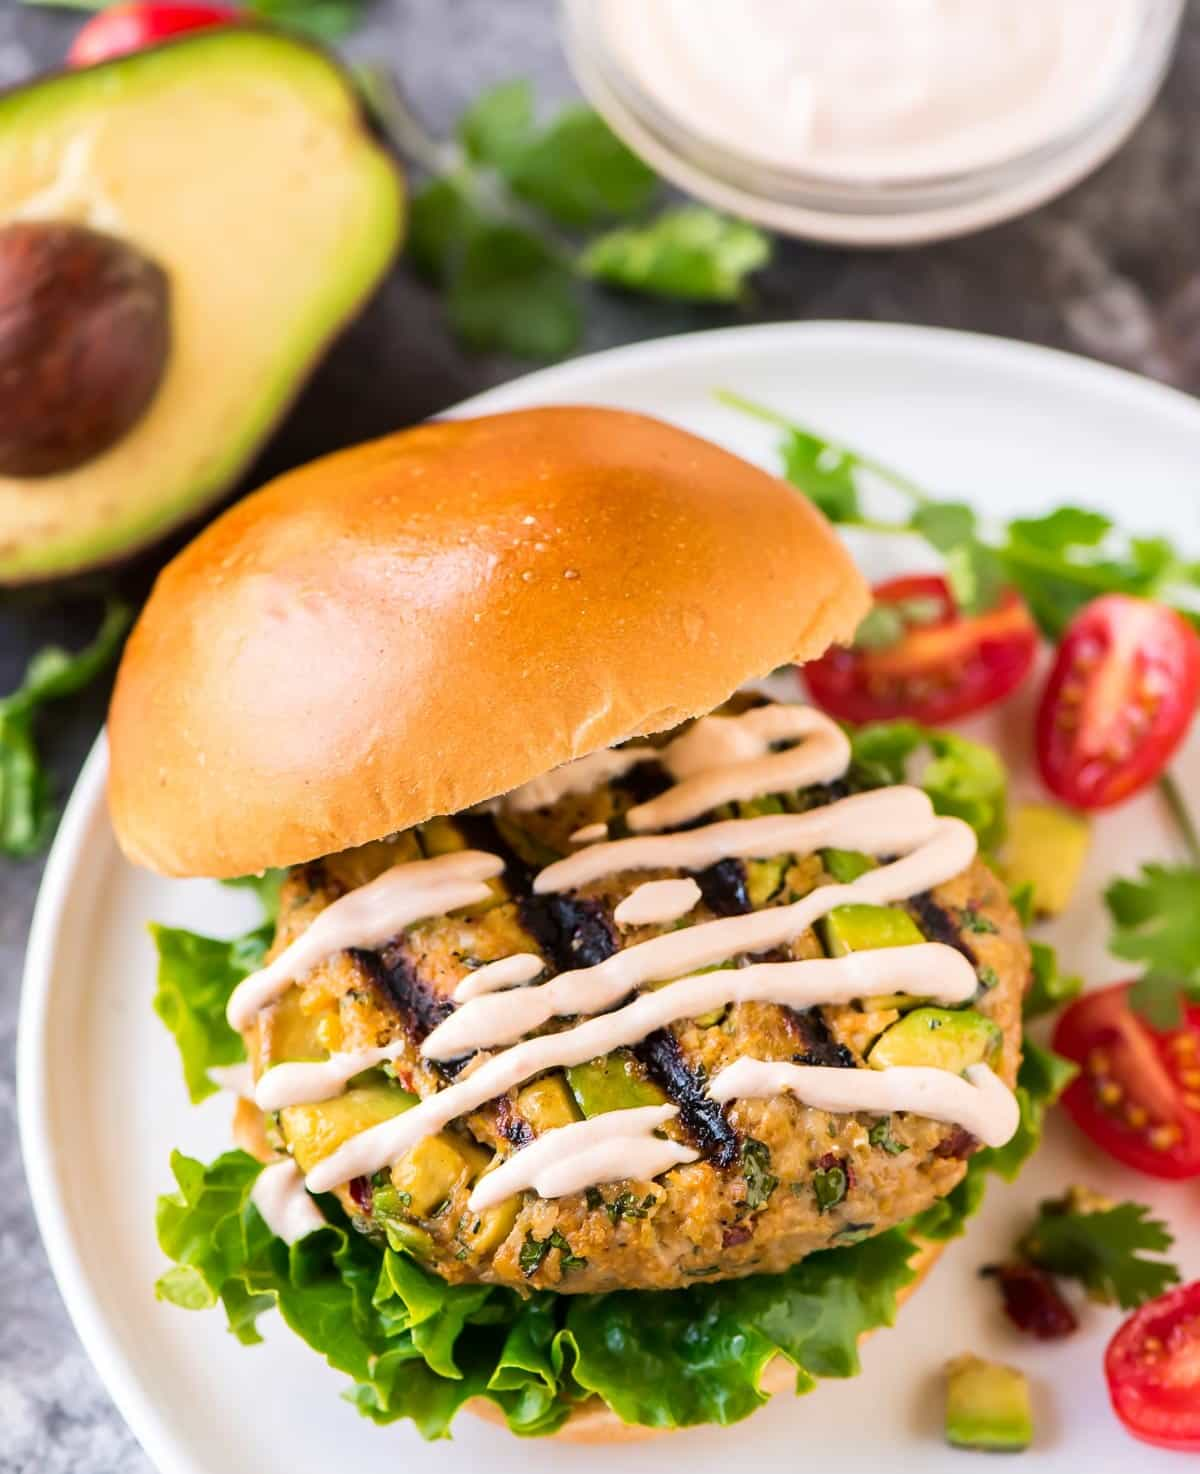 Chicken or Turkey Avocado Burgers. Easy, healthy, and SO flavorful! Top these chicken burgers with guacamole, salsa, cheese, or any of your favorite Tex-Mex toppings for an easy, healthy, 30 minute meal. Recipe at wellplated.com | @wellplated